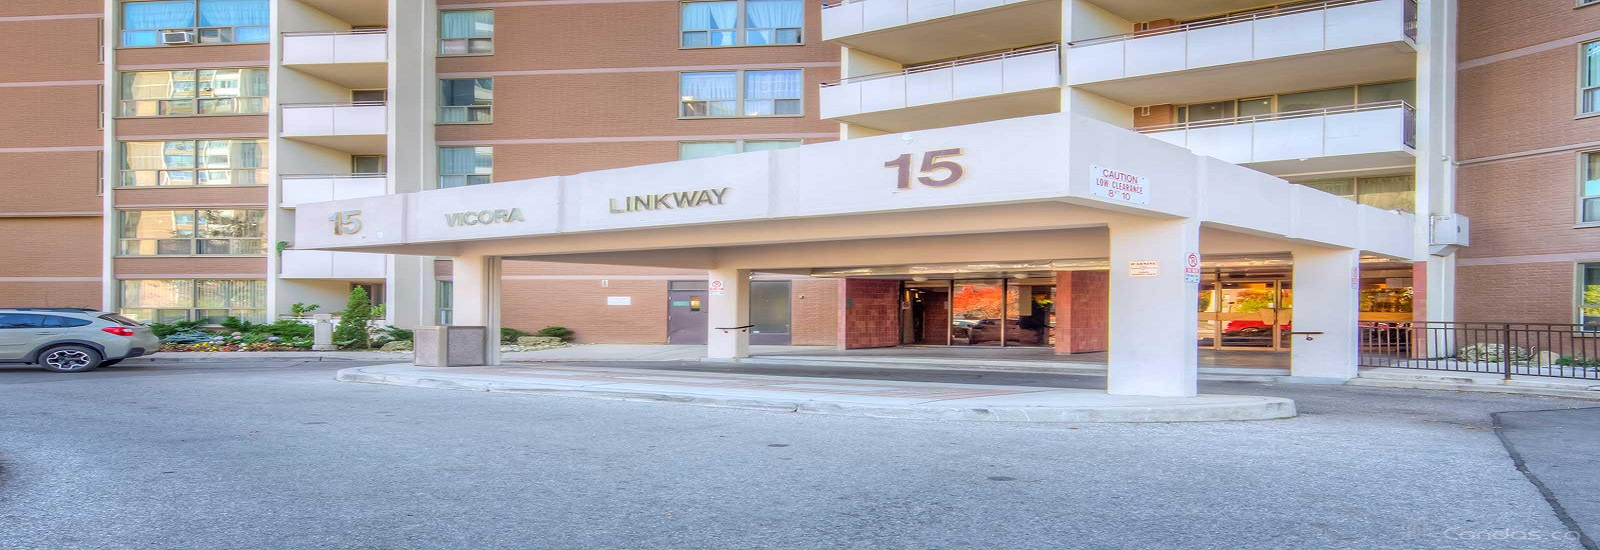 15 Vicora Linkway Condos For Sale